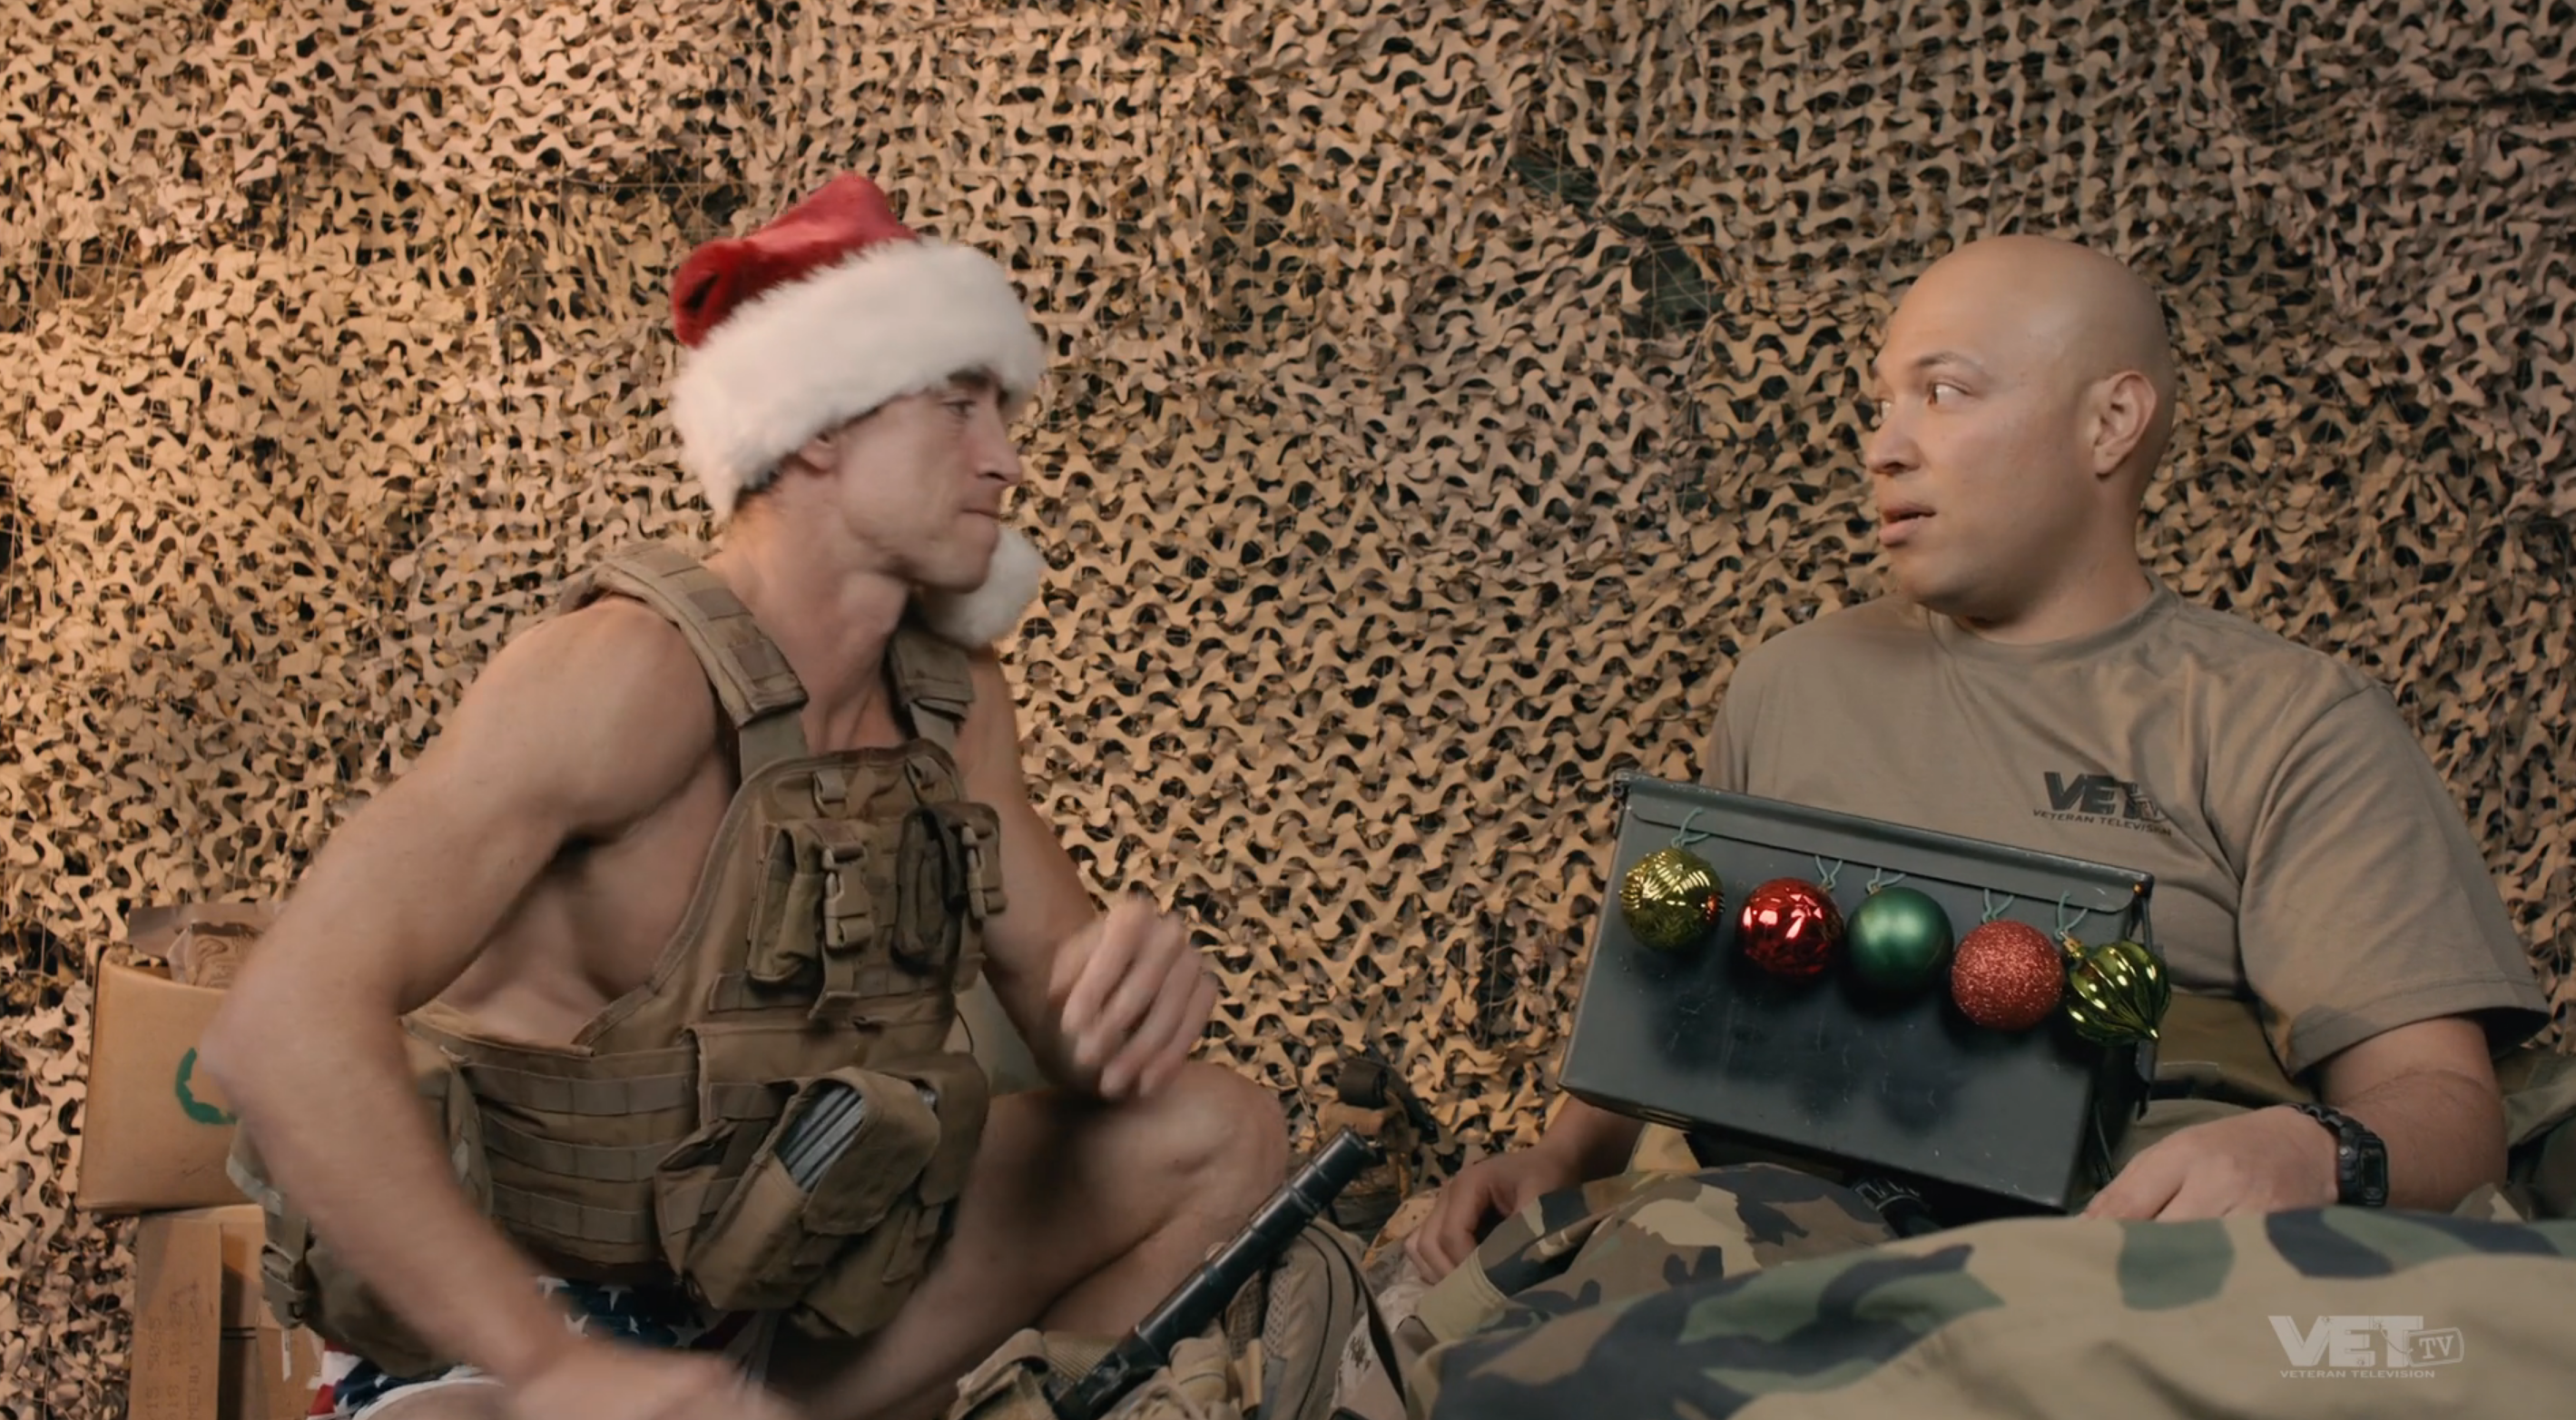 Donny OMalley sits with a soldier during Christmas.